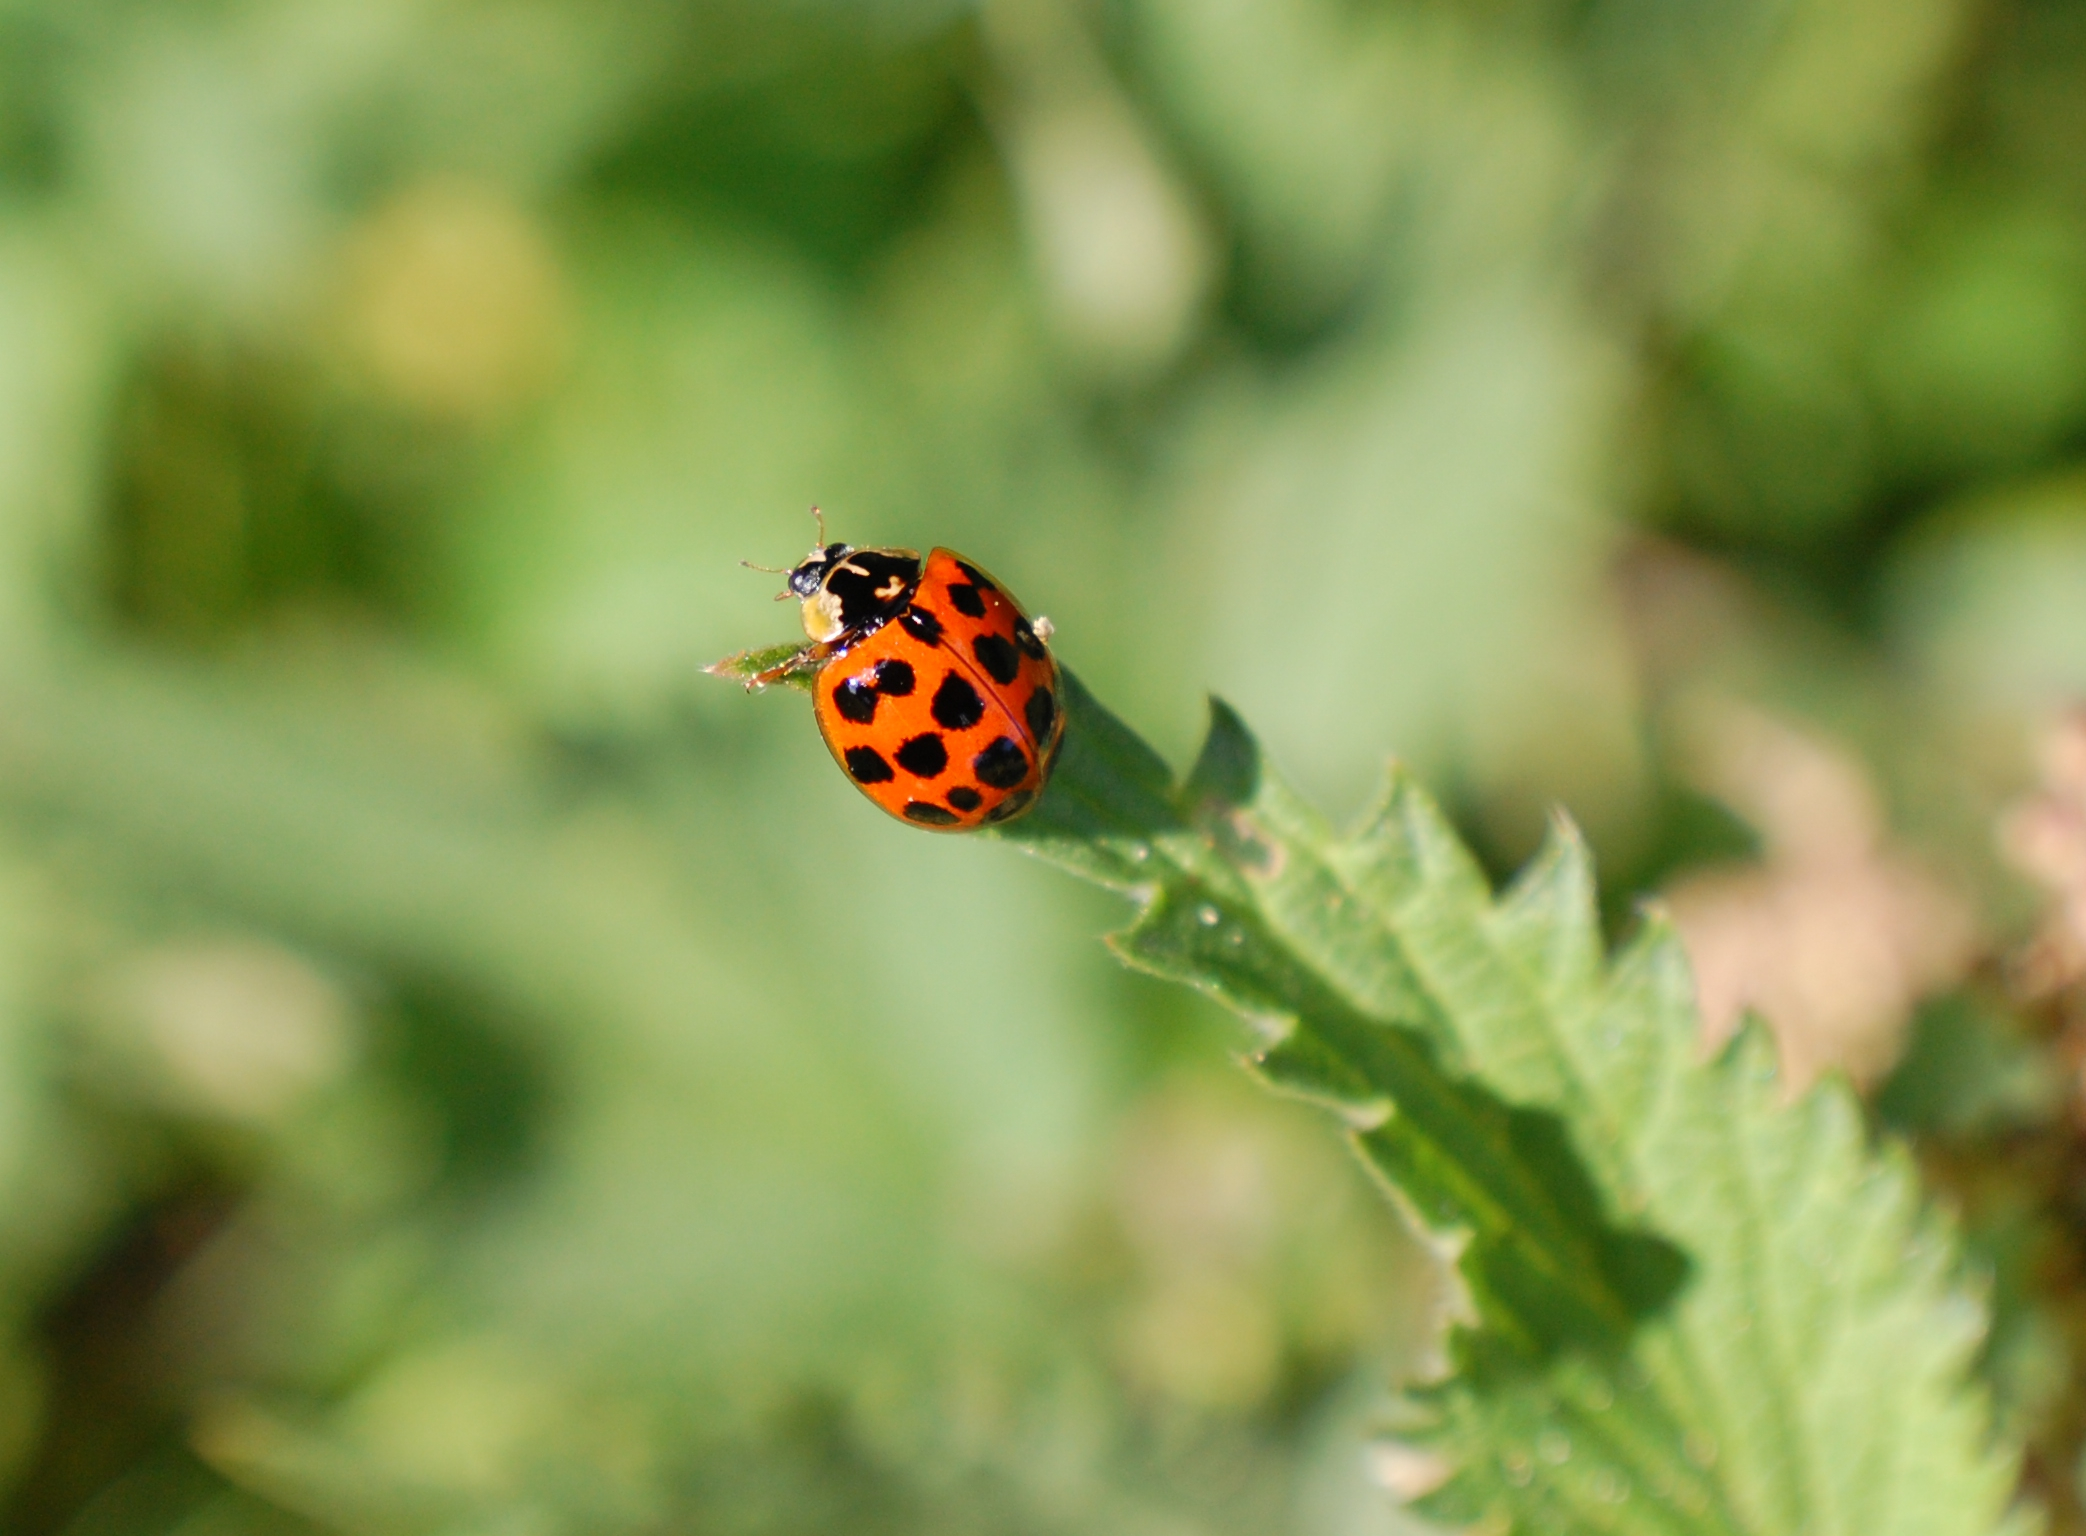 Harlequin ladybird - Image by Richard Comont